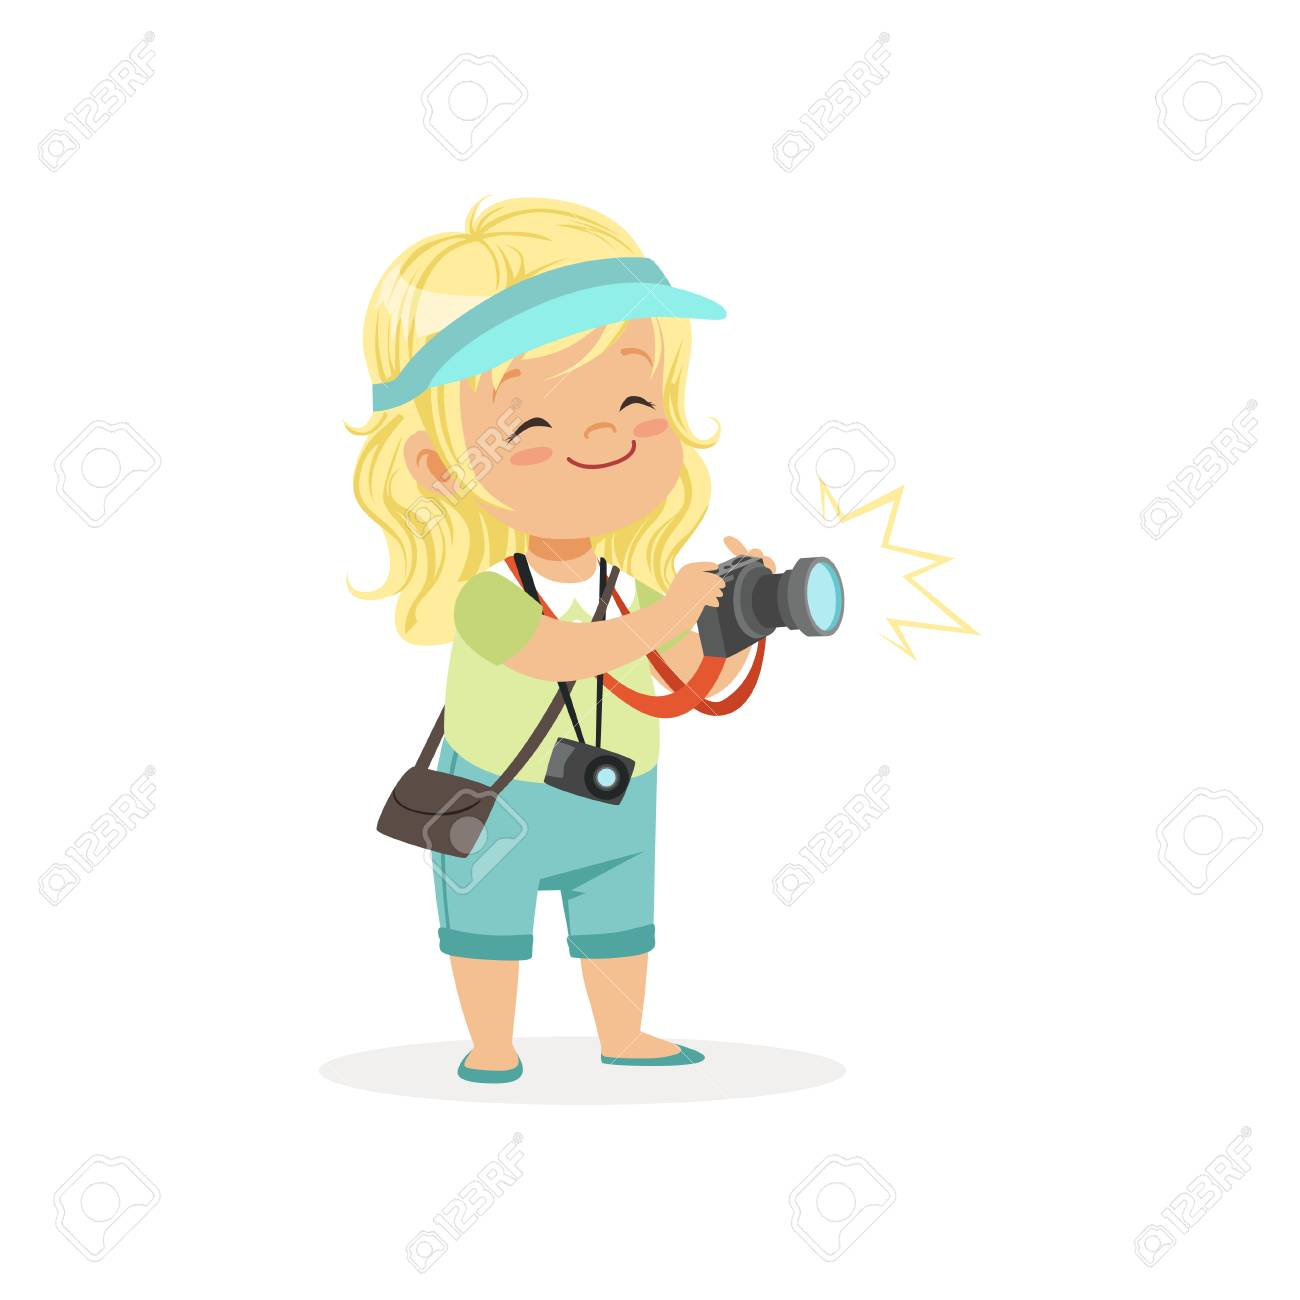 Cartoon flat preschool girl standing with digital photo camera in hands. Photographer or reporter profession concept - 90329229